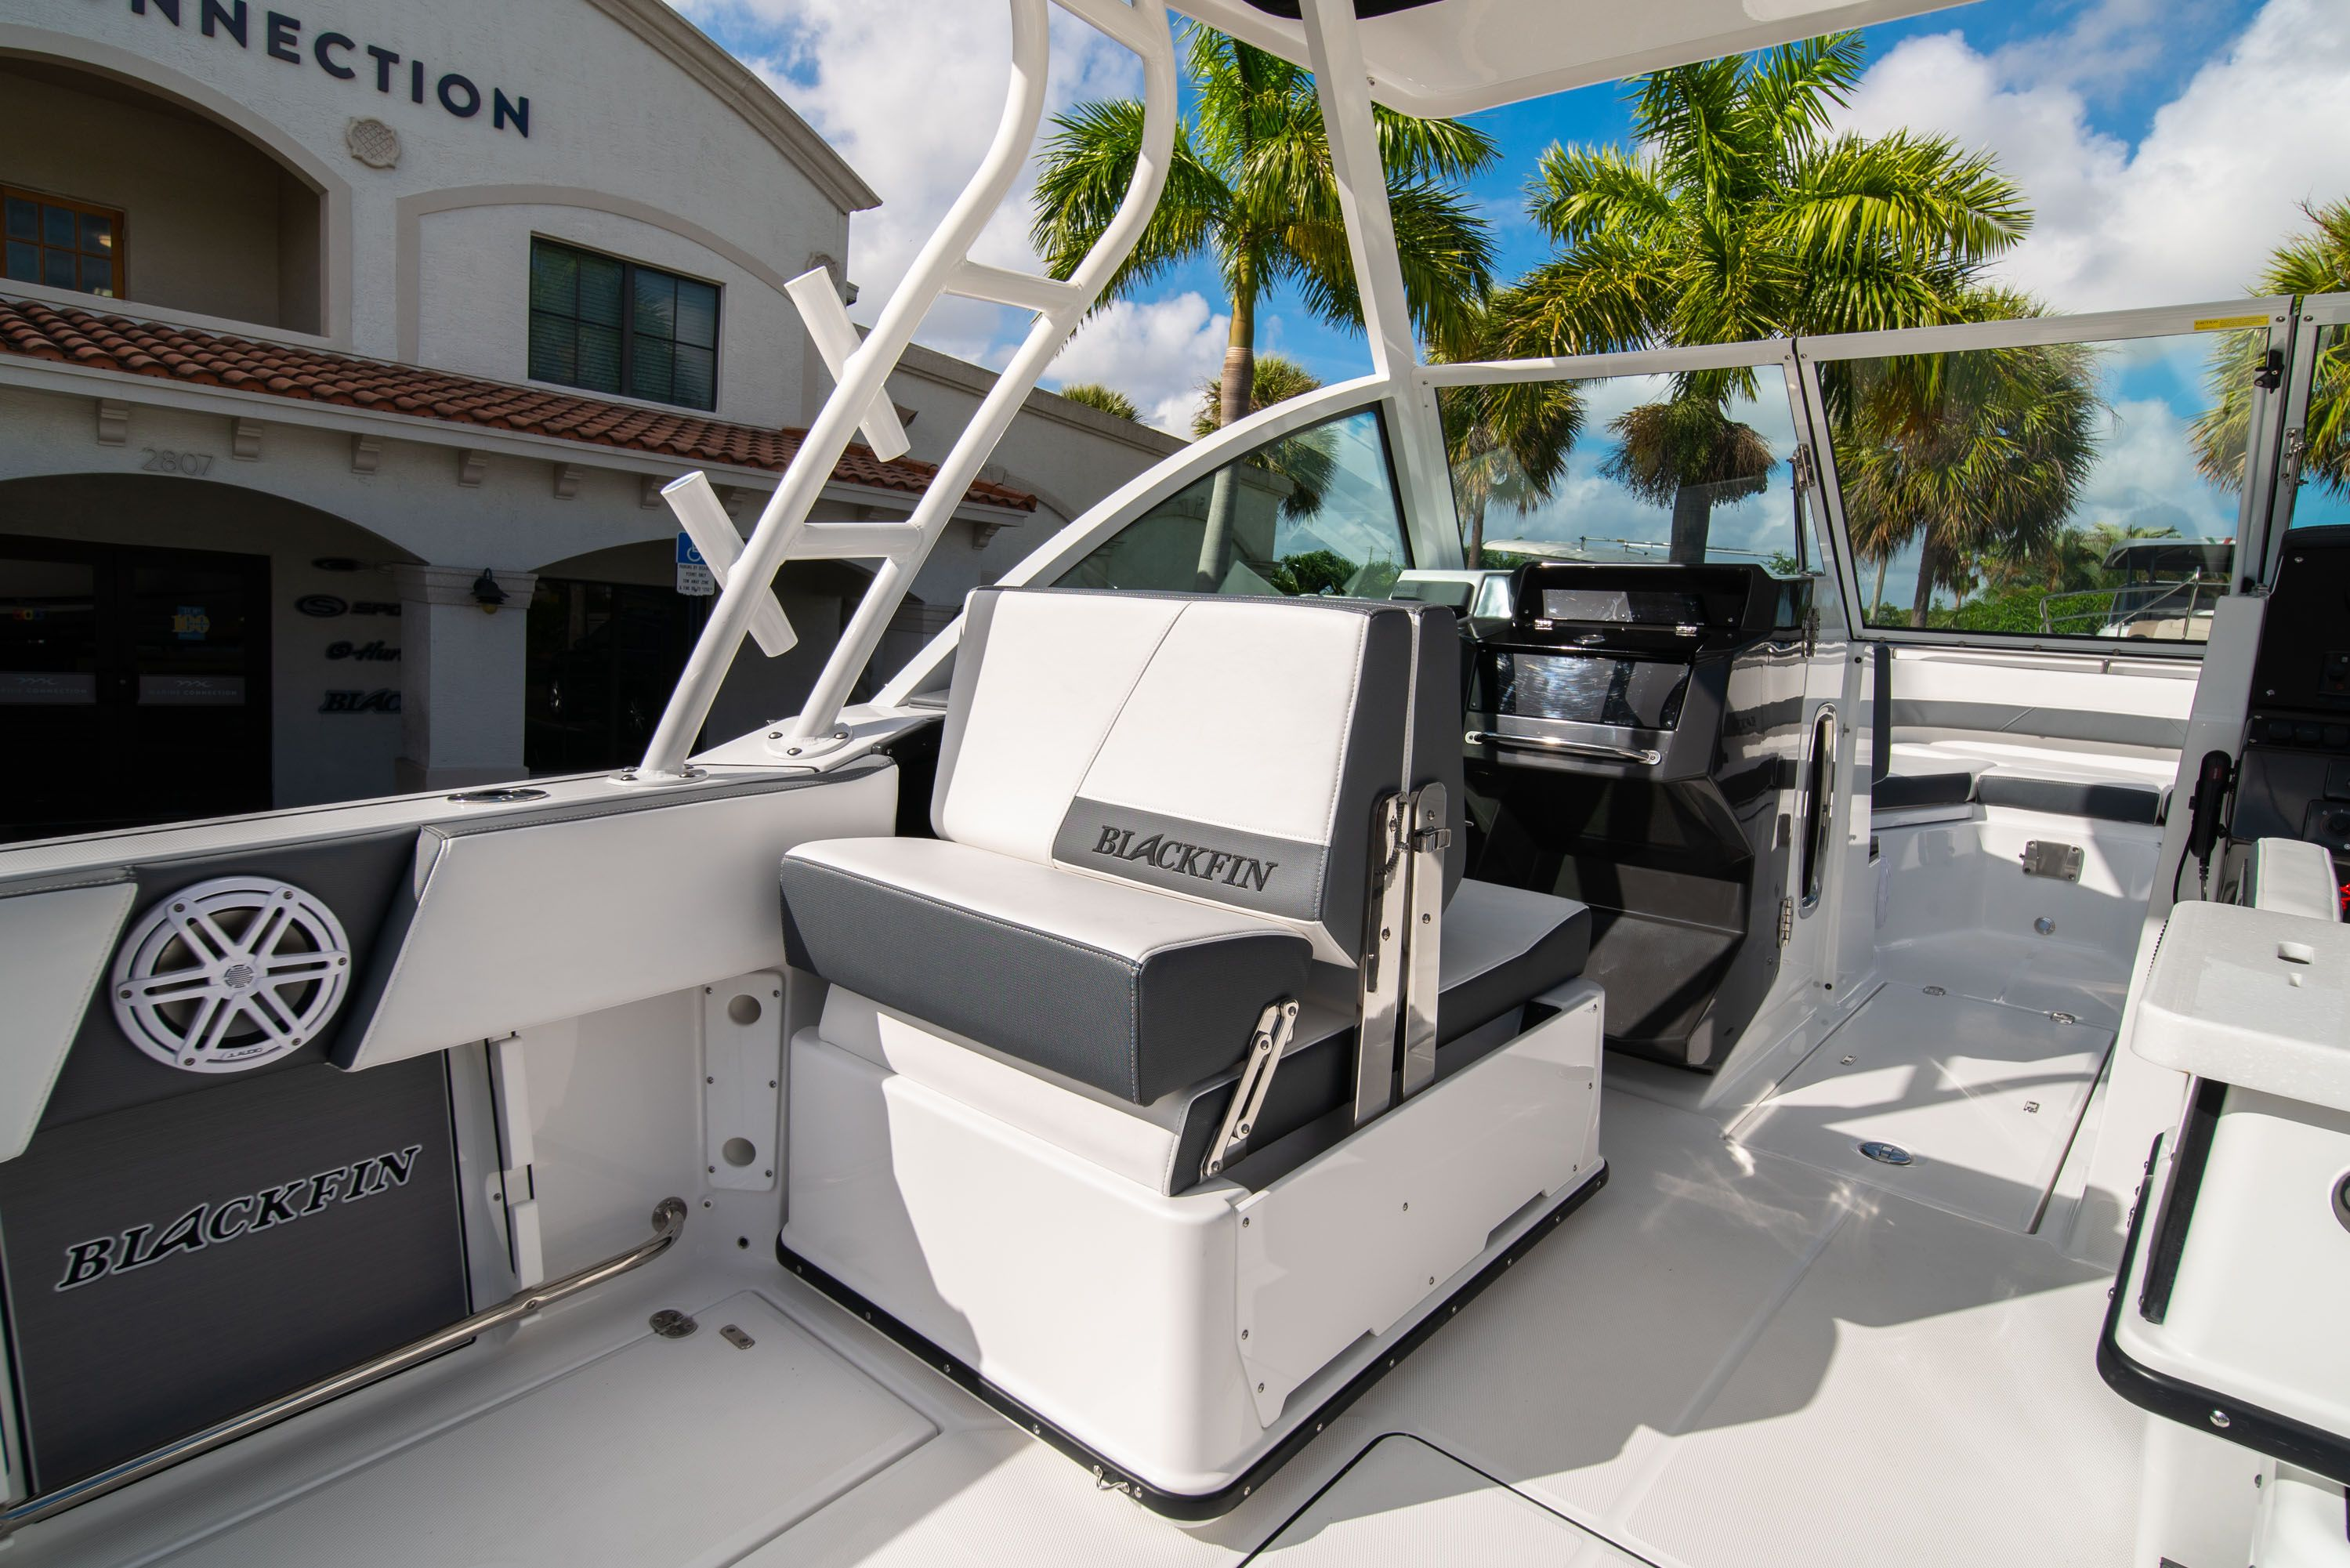 Thumbnail 27 for New 2020 Blackfin 242DC Dual Console boat for sale in West Palm Beach, FL